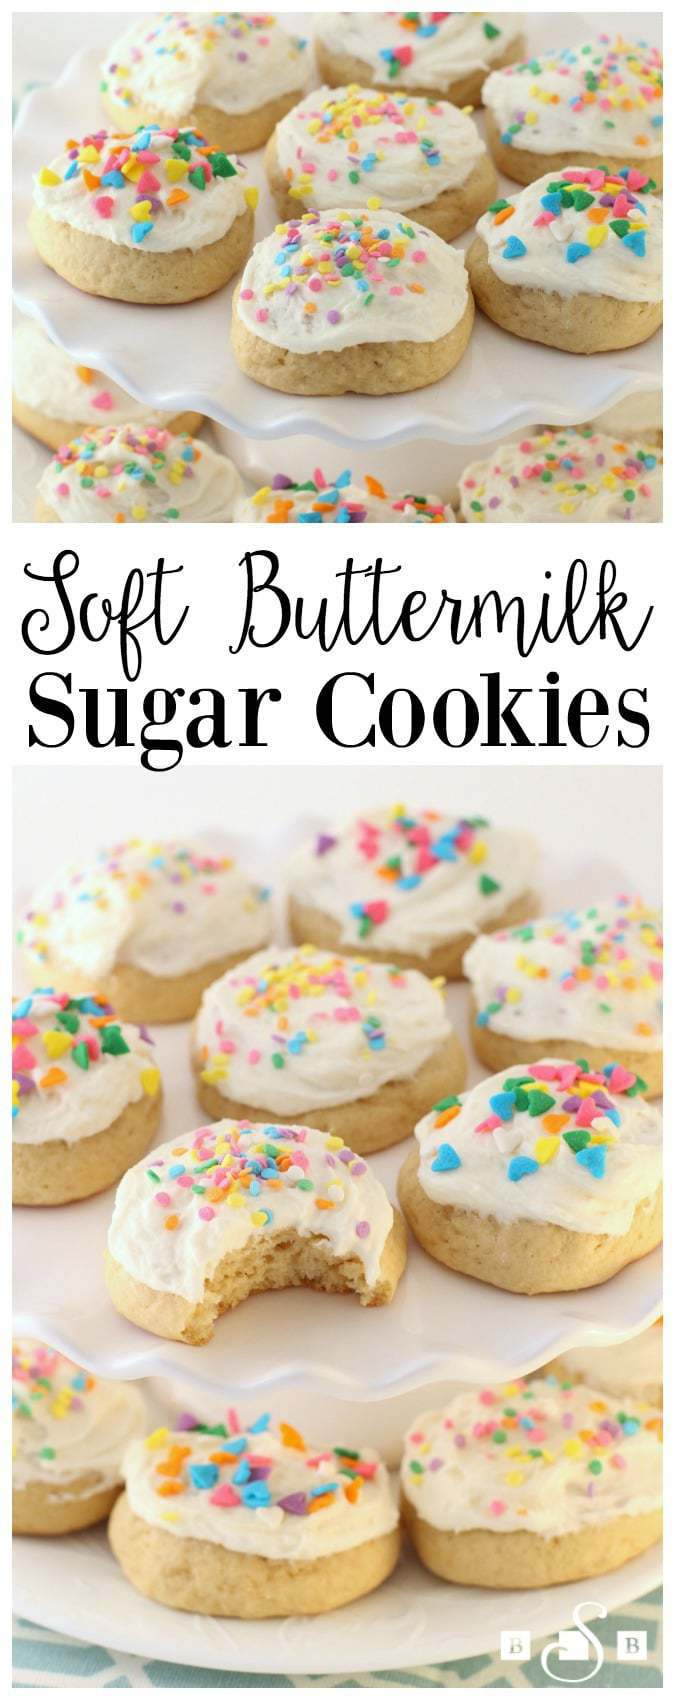 Soft Buttermilk Sugar Cookies are every sugar cookie lovers' dream! They are so soft, delicious, and anyone can make them!